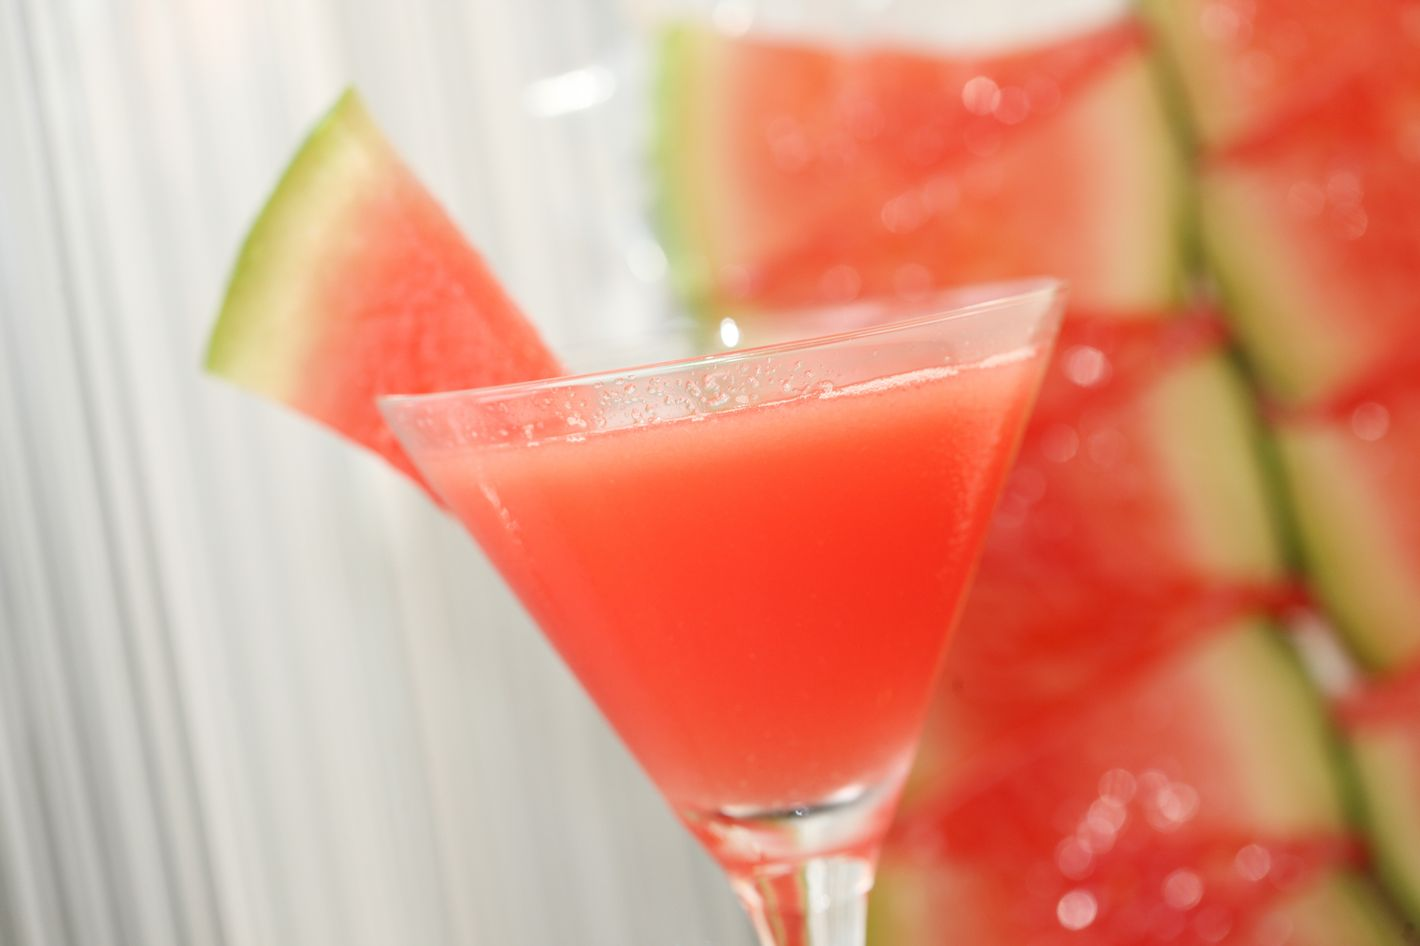 http://pixel.nymag.com/imgs/daily/grub/2012/06/26/26-watermellon-juice-craft-martini.jpg